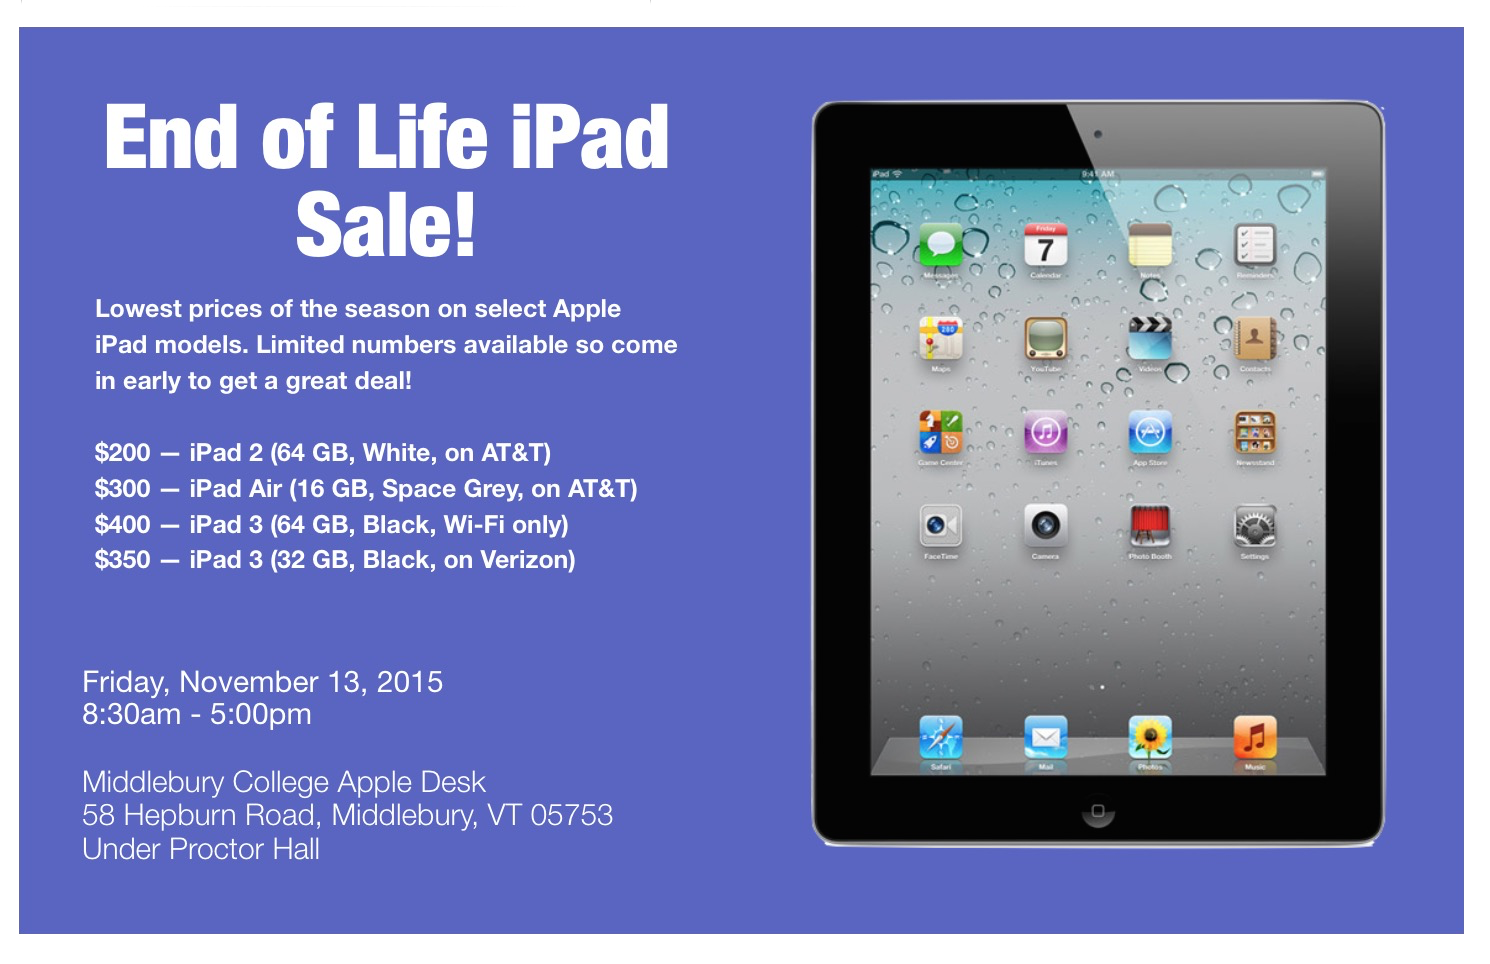 EOL iPad Sale